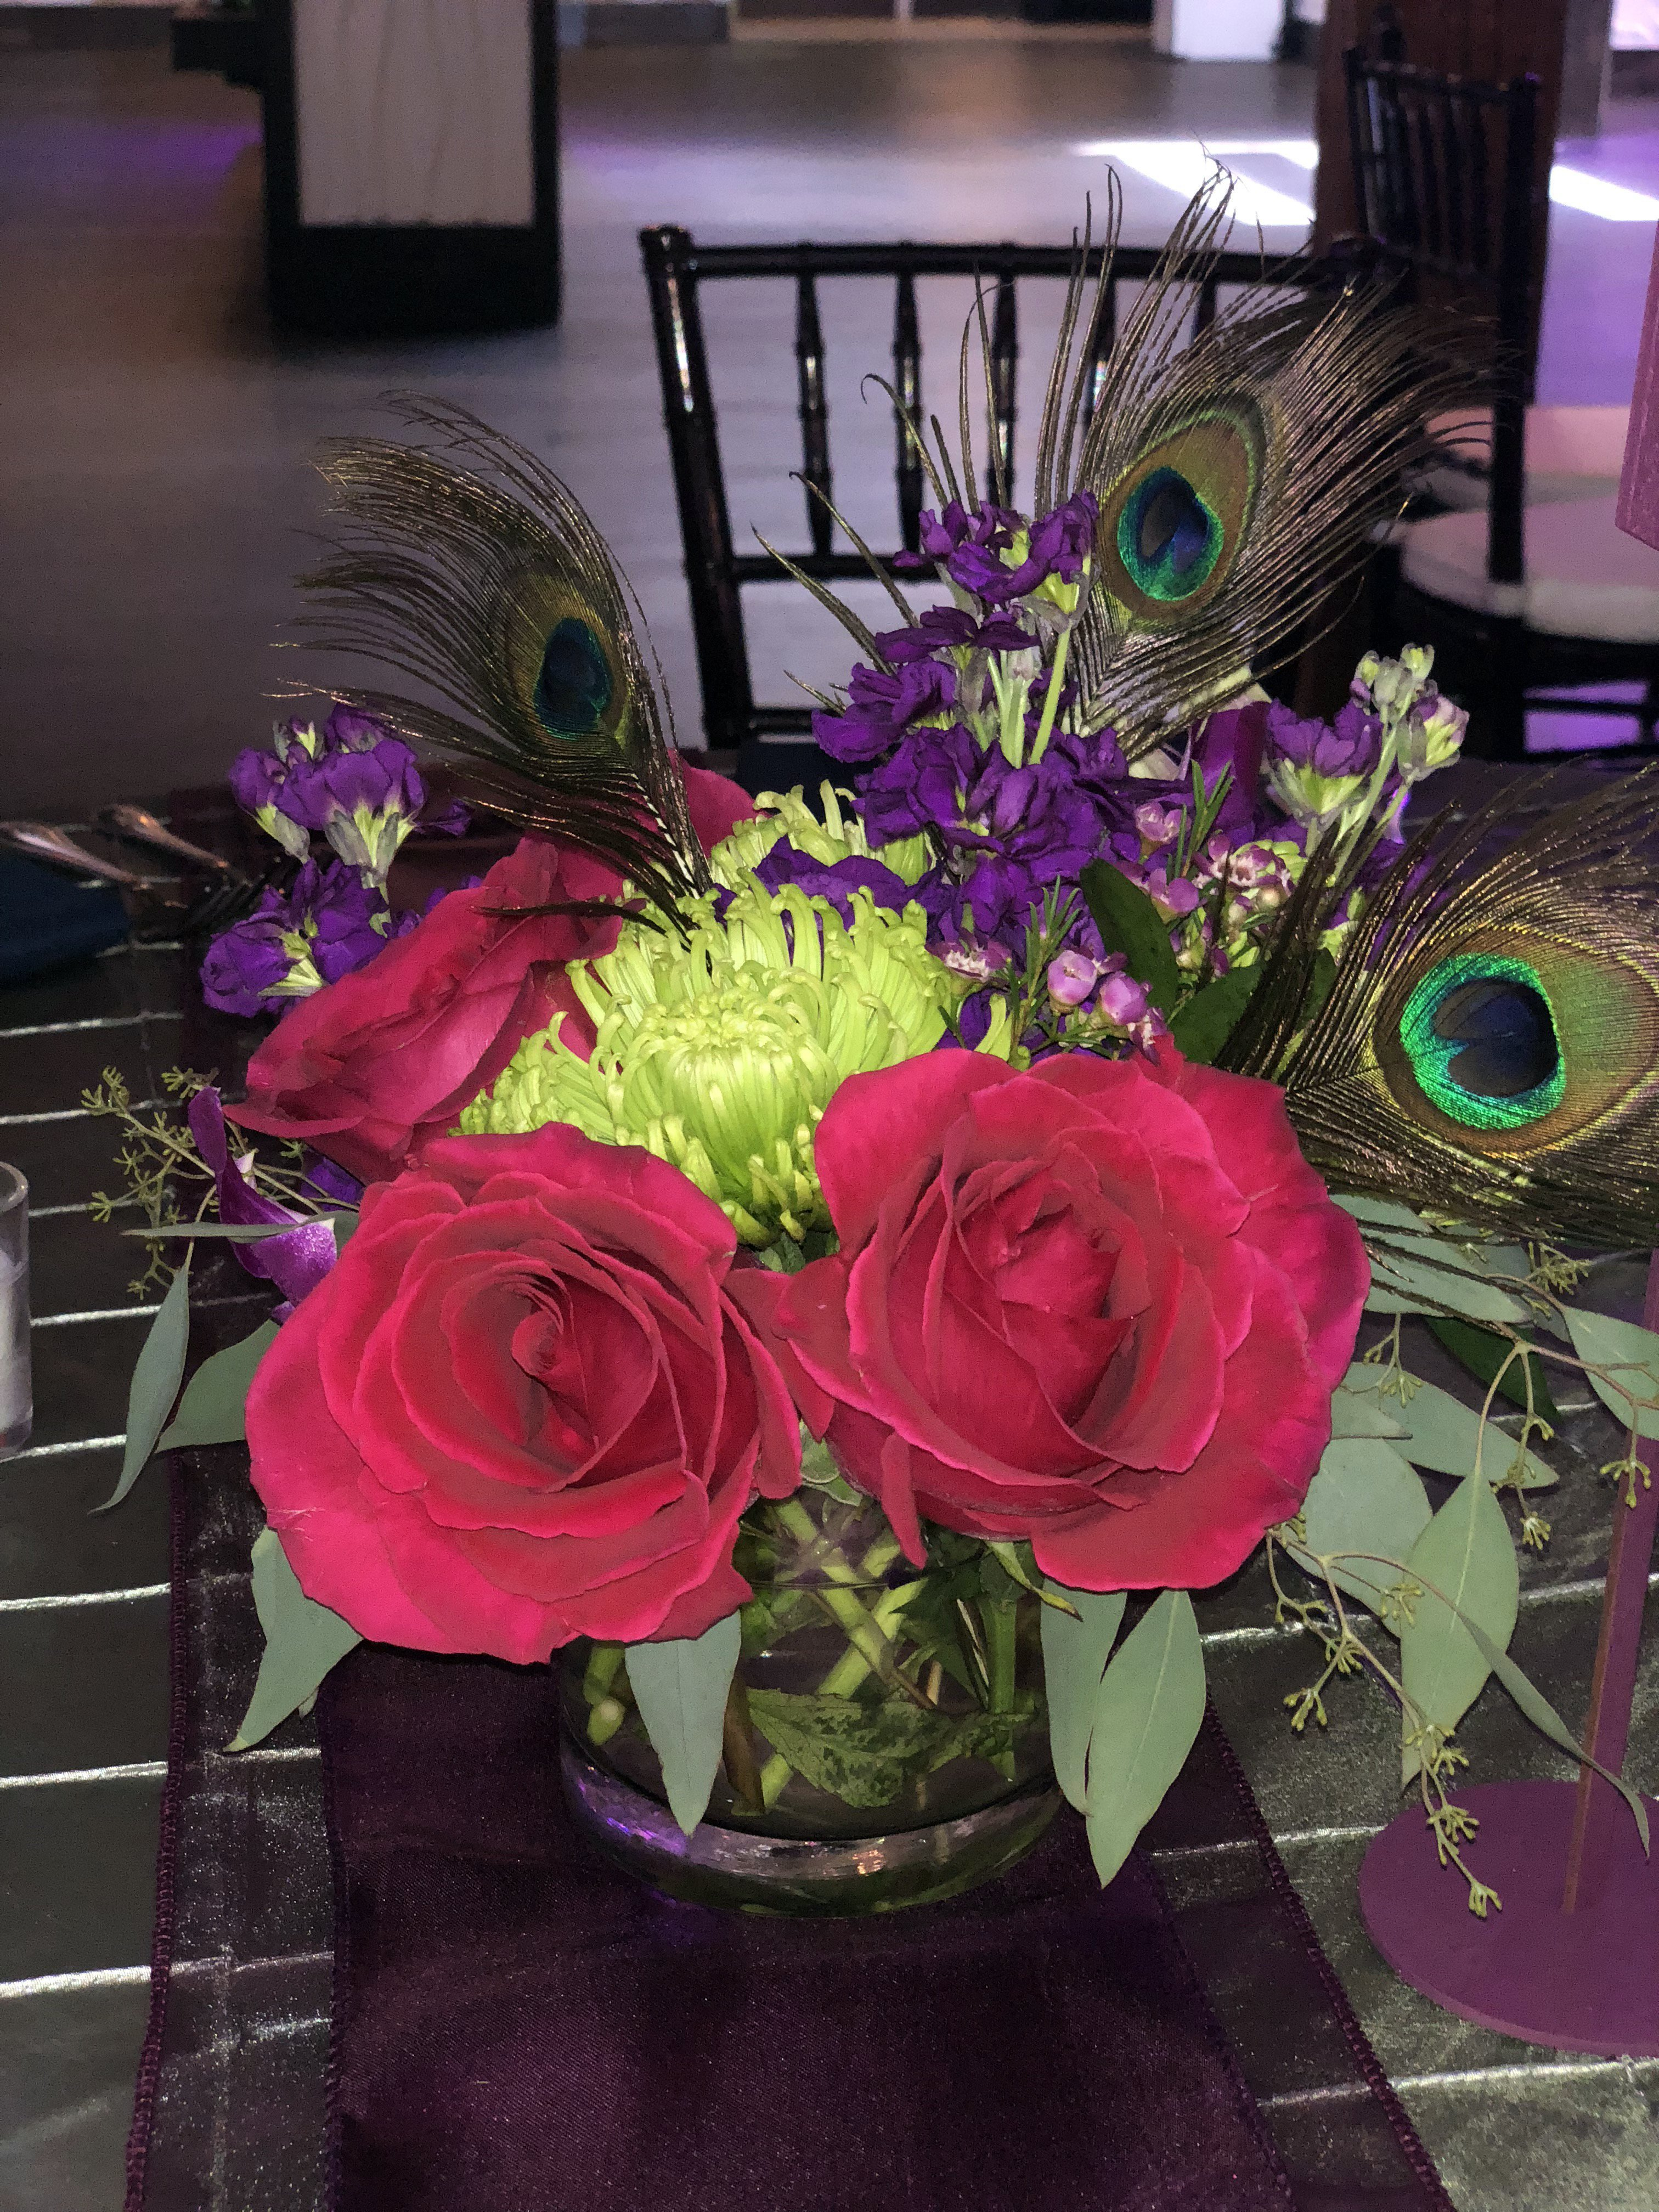 minneapolis event center reception flowers and feathers